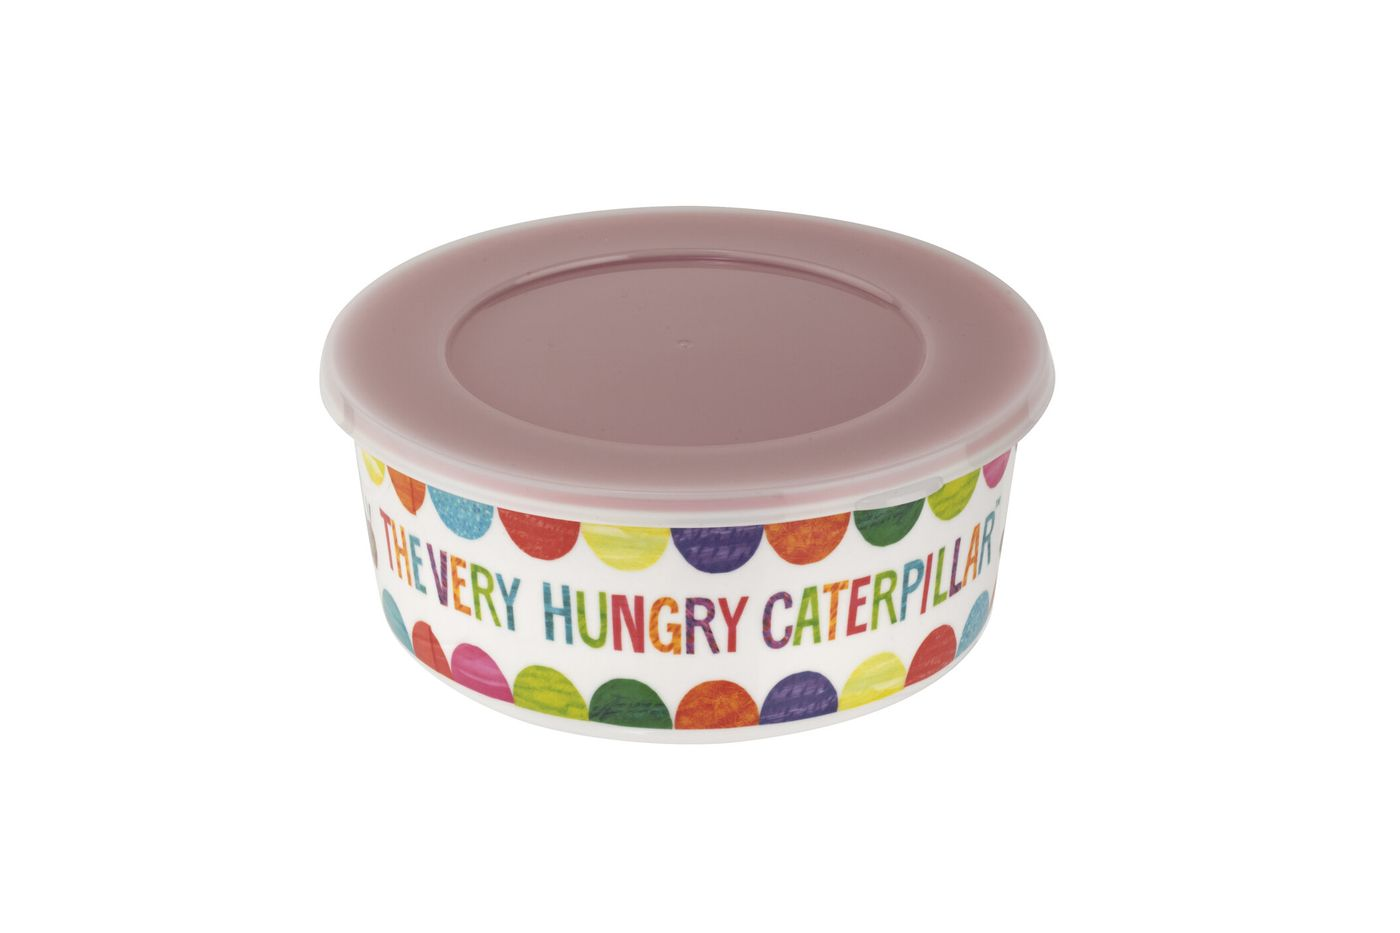 Portmeirion The Very Hungry Caterpillar by Eric Carle Melamine Storage Tubs Set of 2 thumb 2